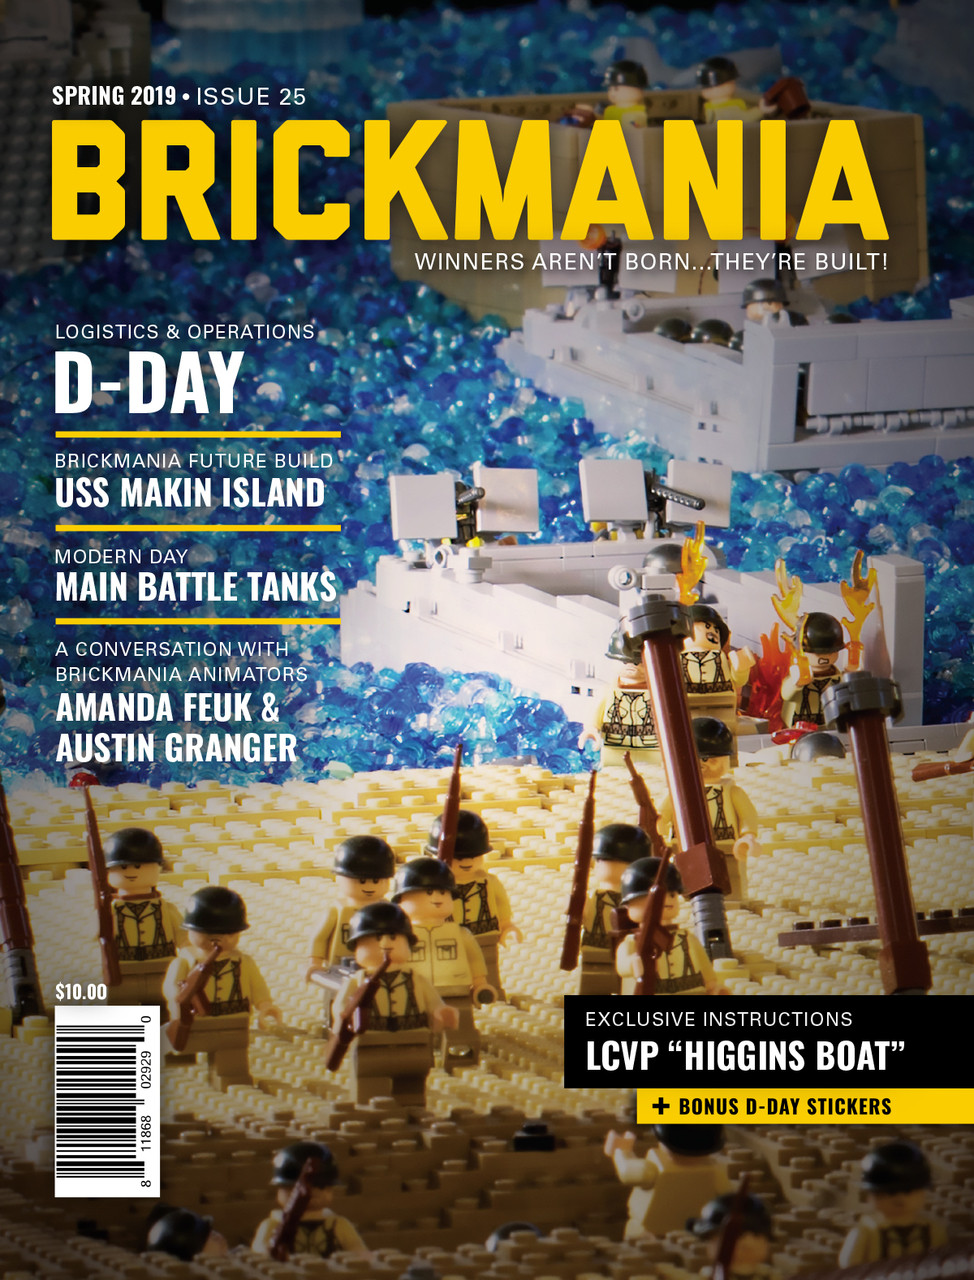 Brickmania Magazine Issue #25 Spring 2019